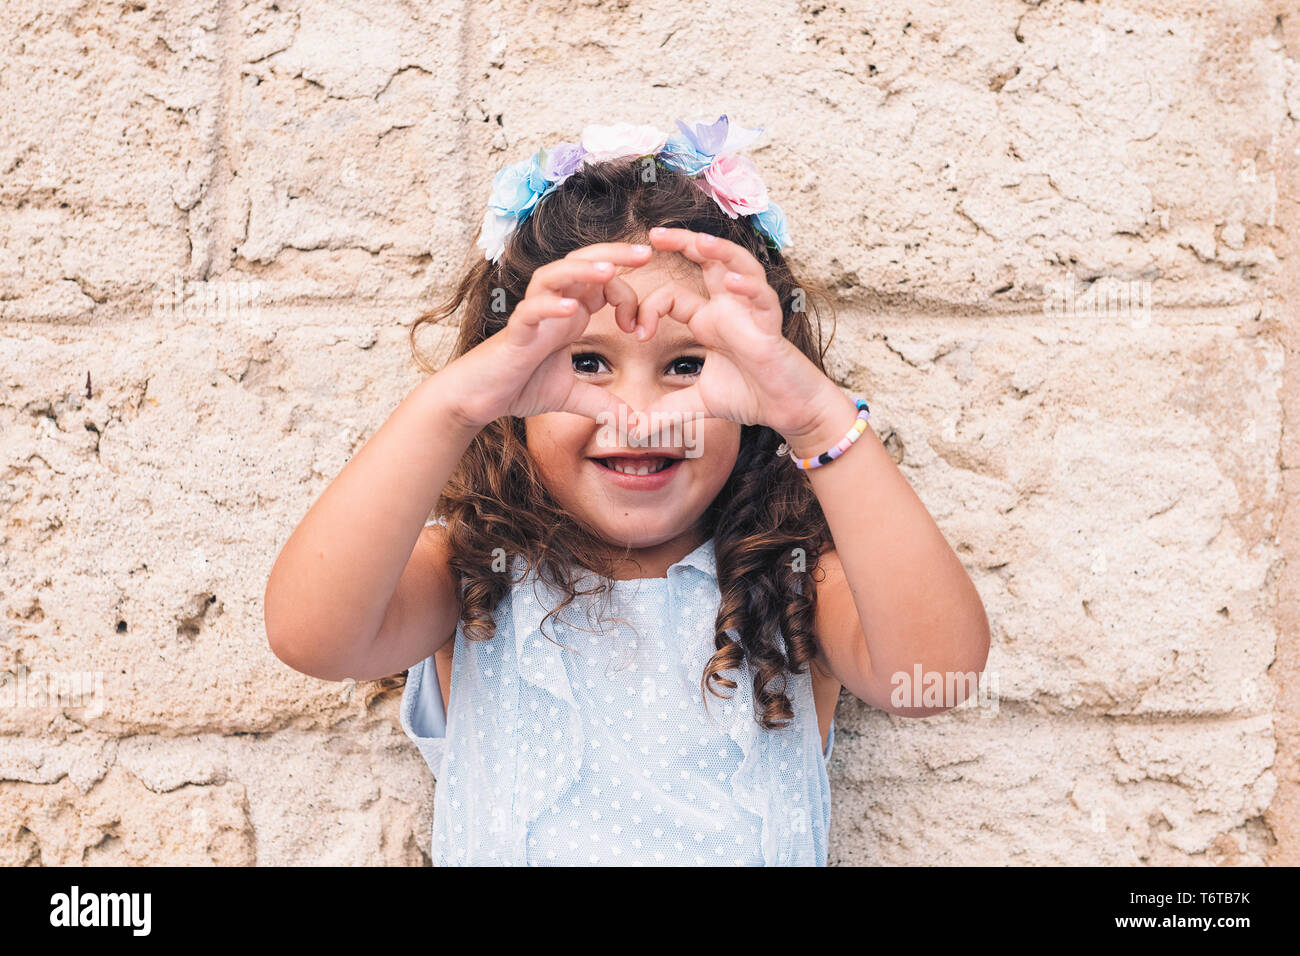 little girl making a heart with her hands, is in front of a stone wall and wears a blue dress and a flower headband - Stock Image